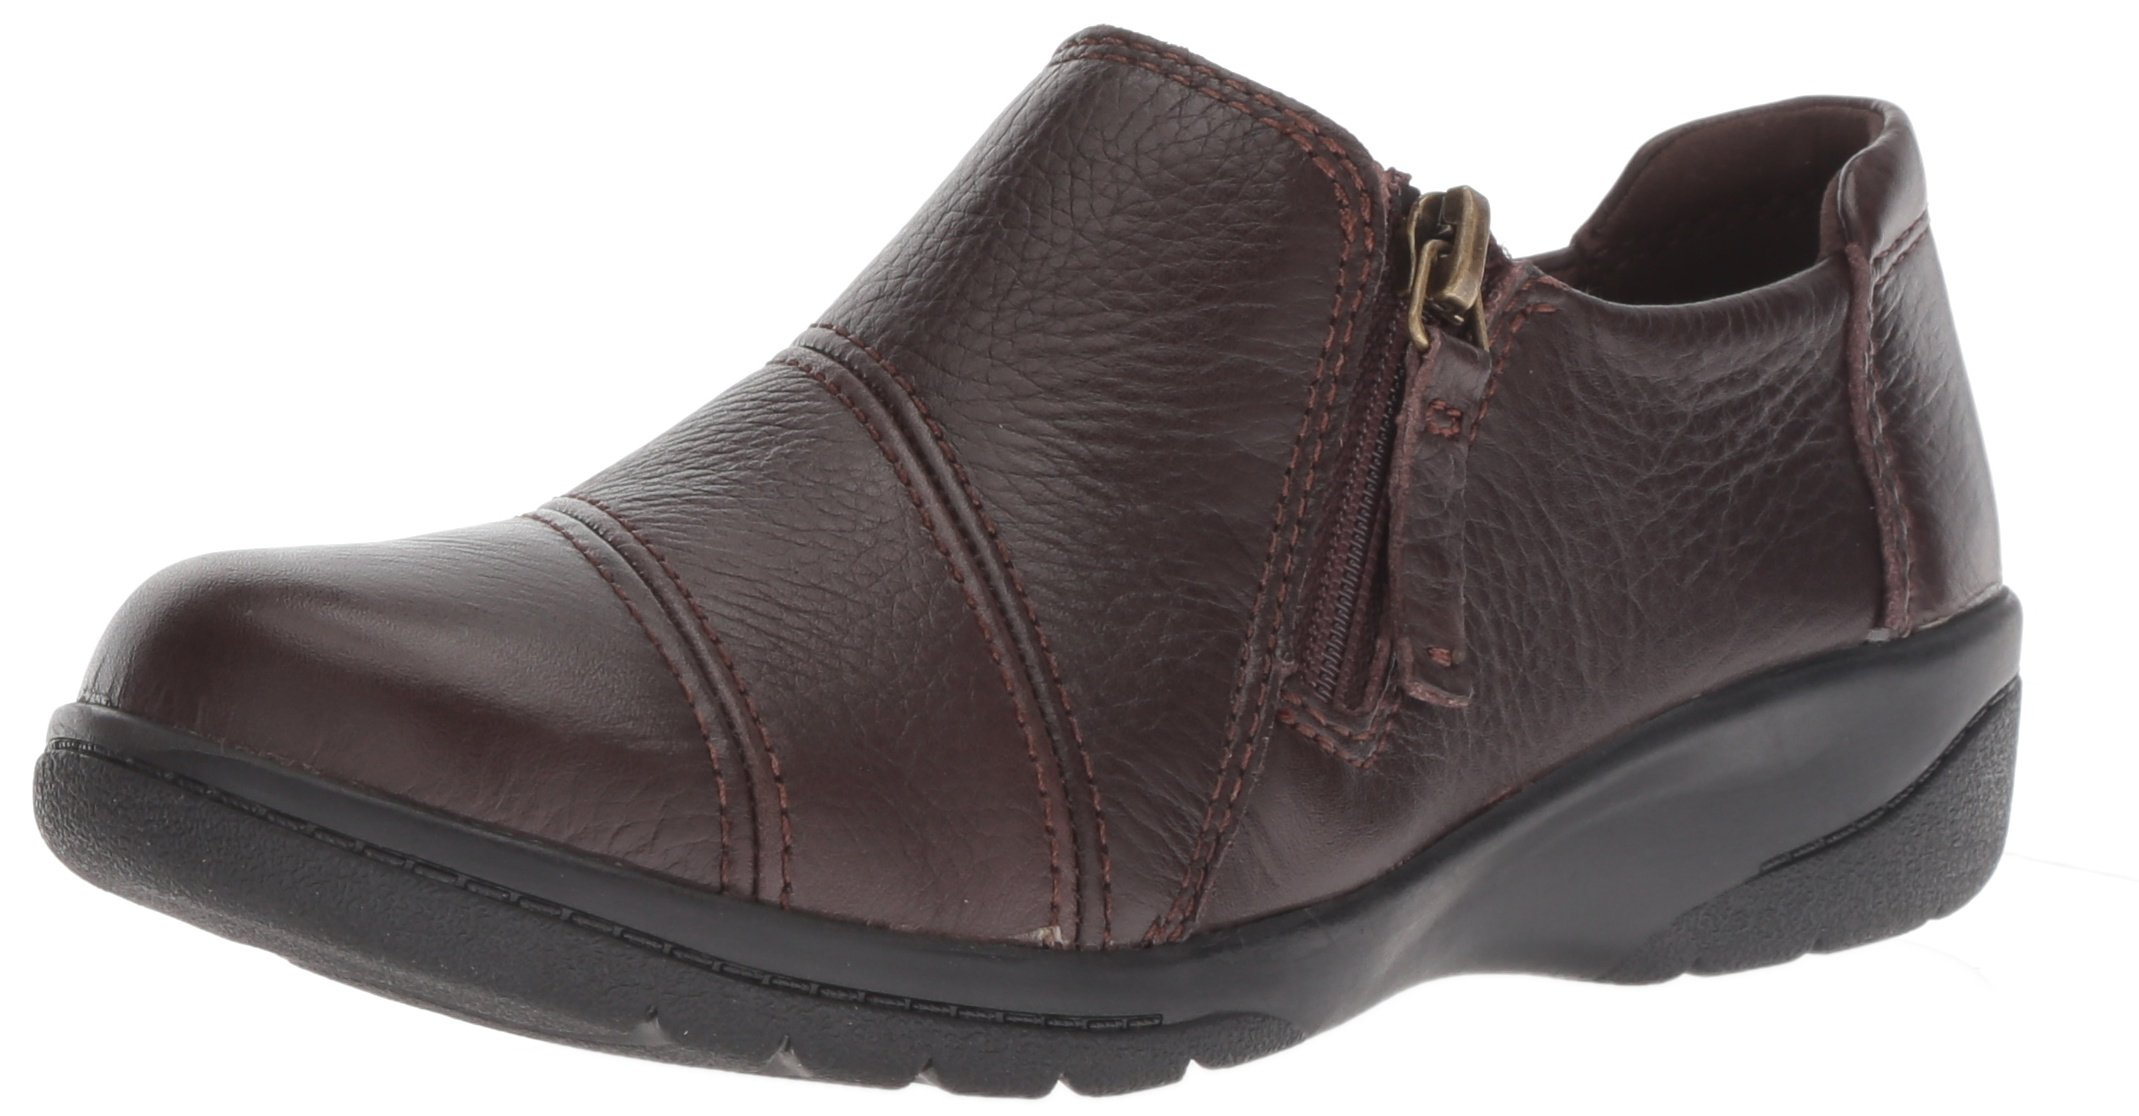 CLARKS Women's Cheyn Clay Loafer, Brown Leather, 085 M US